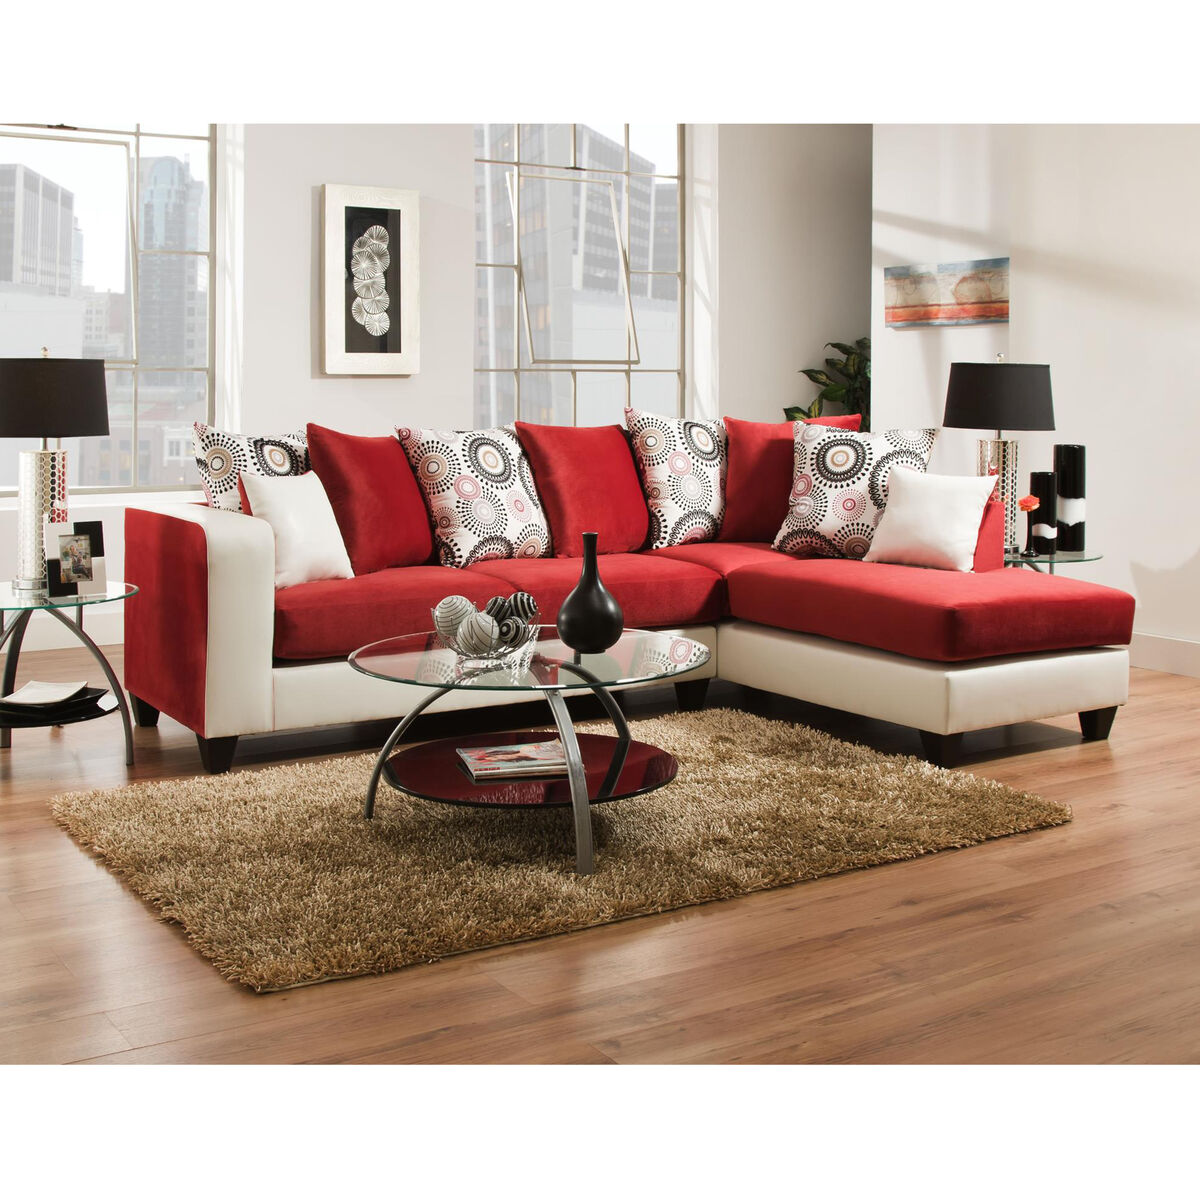 Flash furniture riverstone implosion red velvet sectional for Runescape xp table 1 99